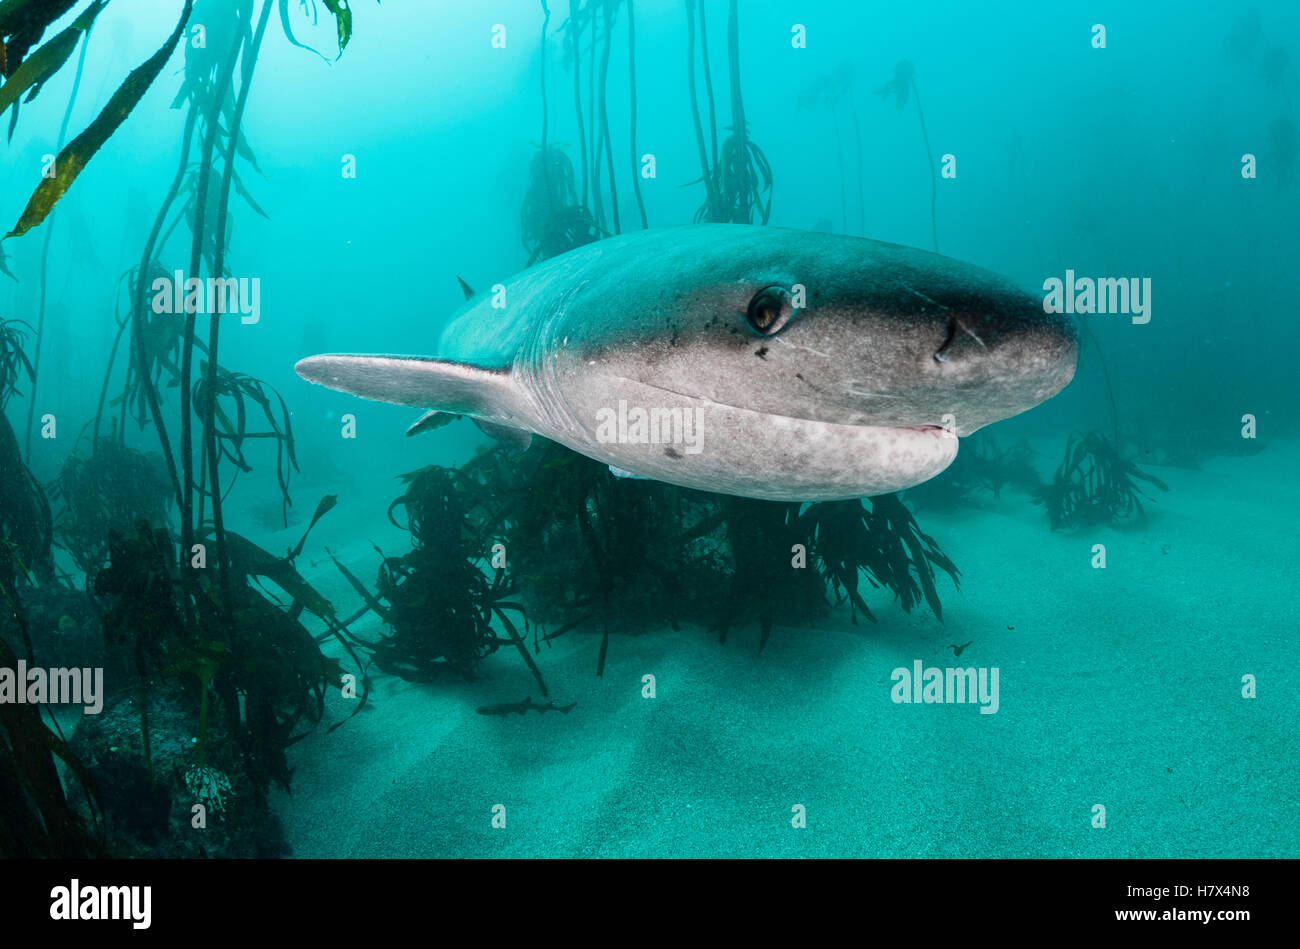 Broad nosed seven gill shark swimming through the kelp forests of False Bay, Simonstown, South Africa. - Stock Image